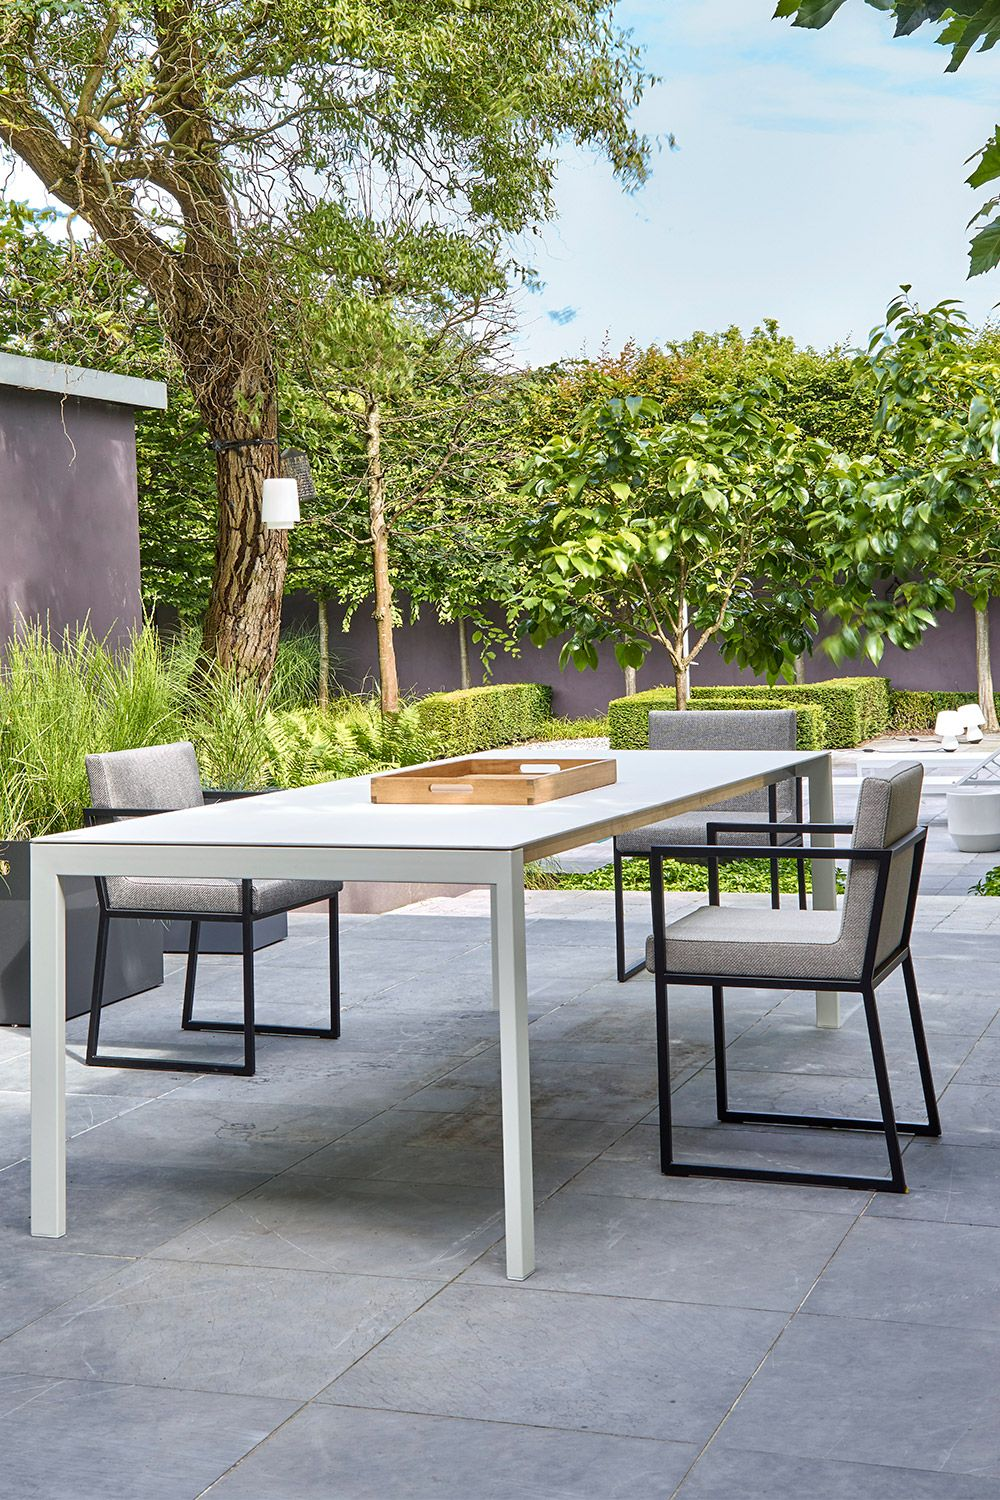 Iso dining chair designed by marie christine dorner for ligne roset available at linea inc modern furniture los angeles infolinea inc com